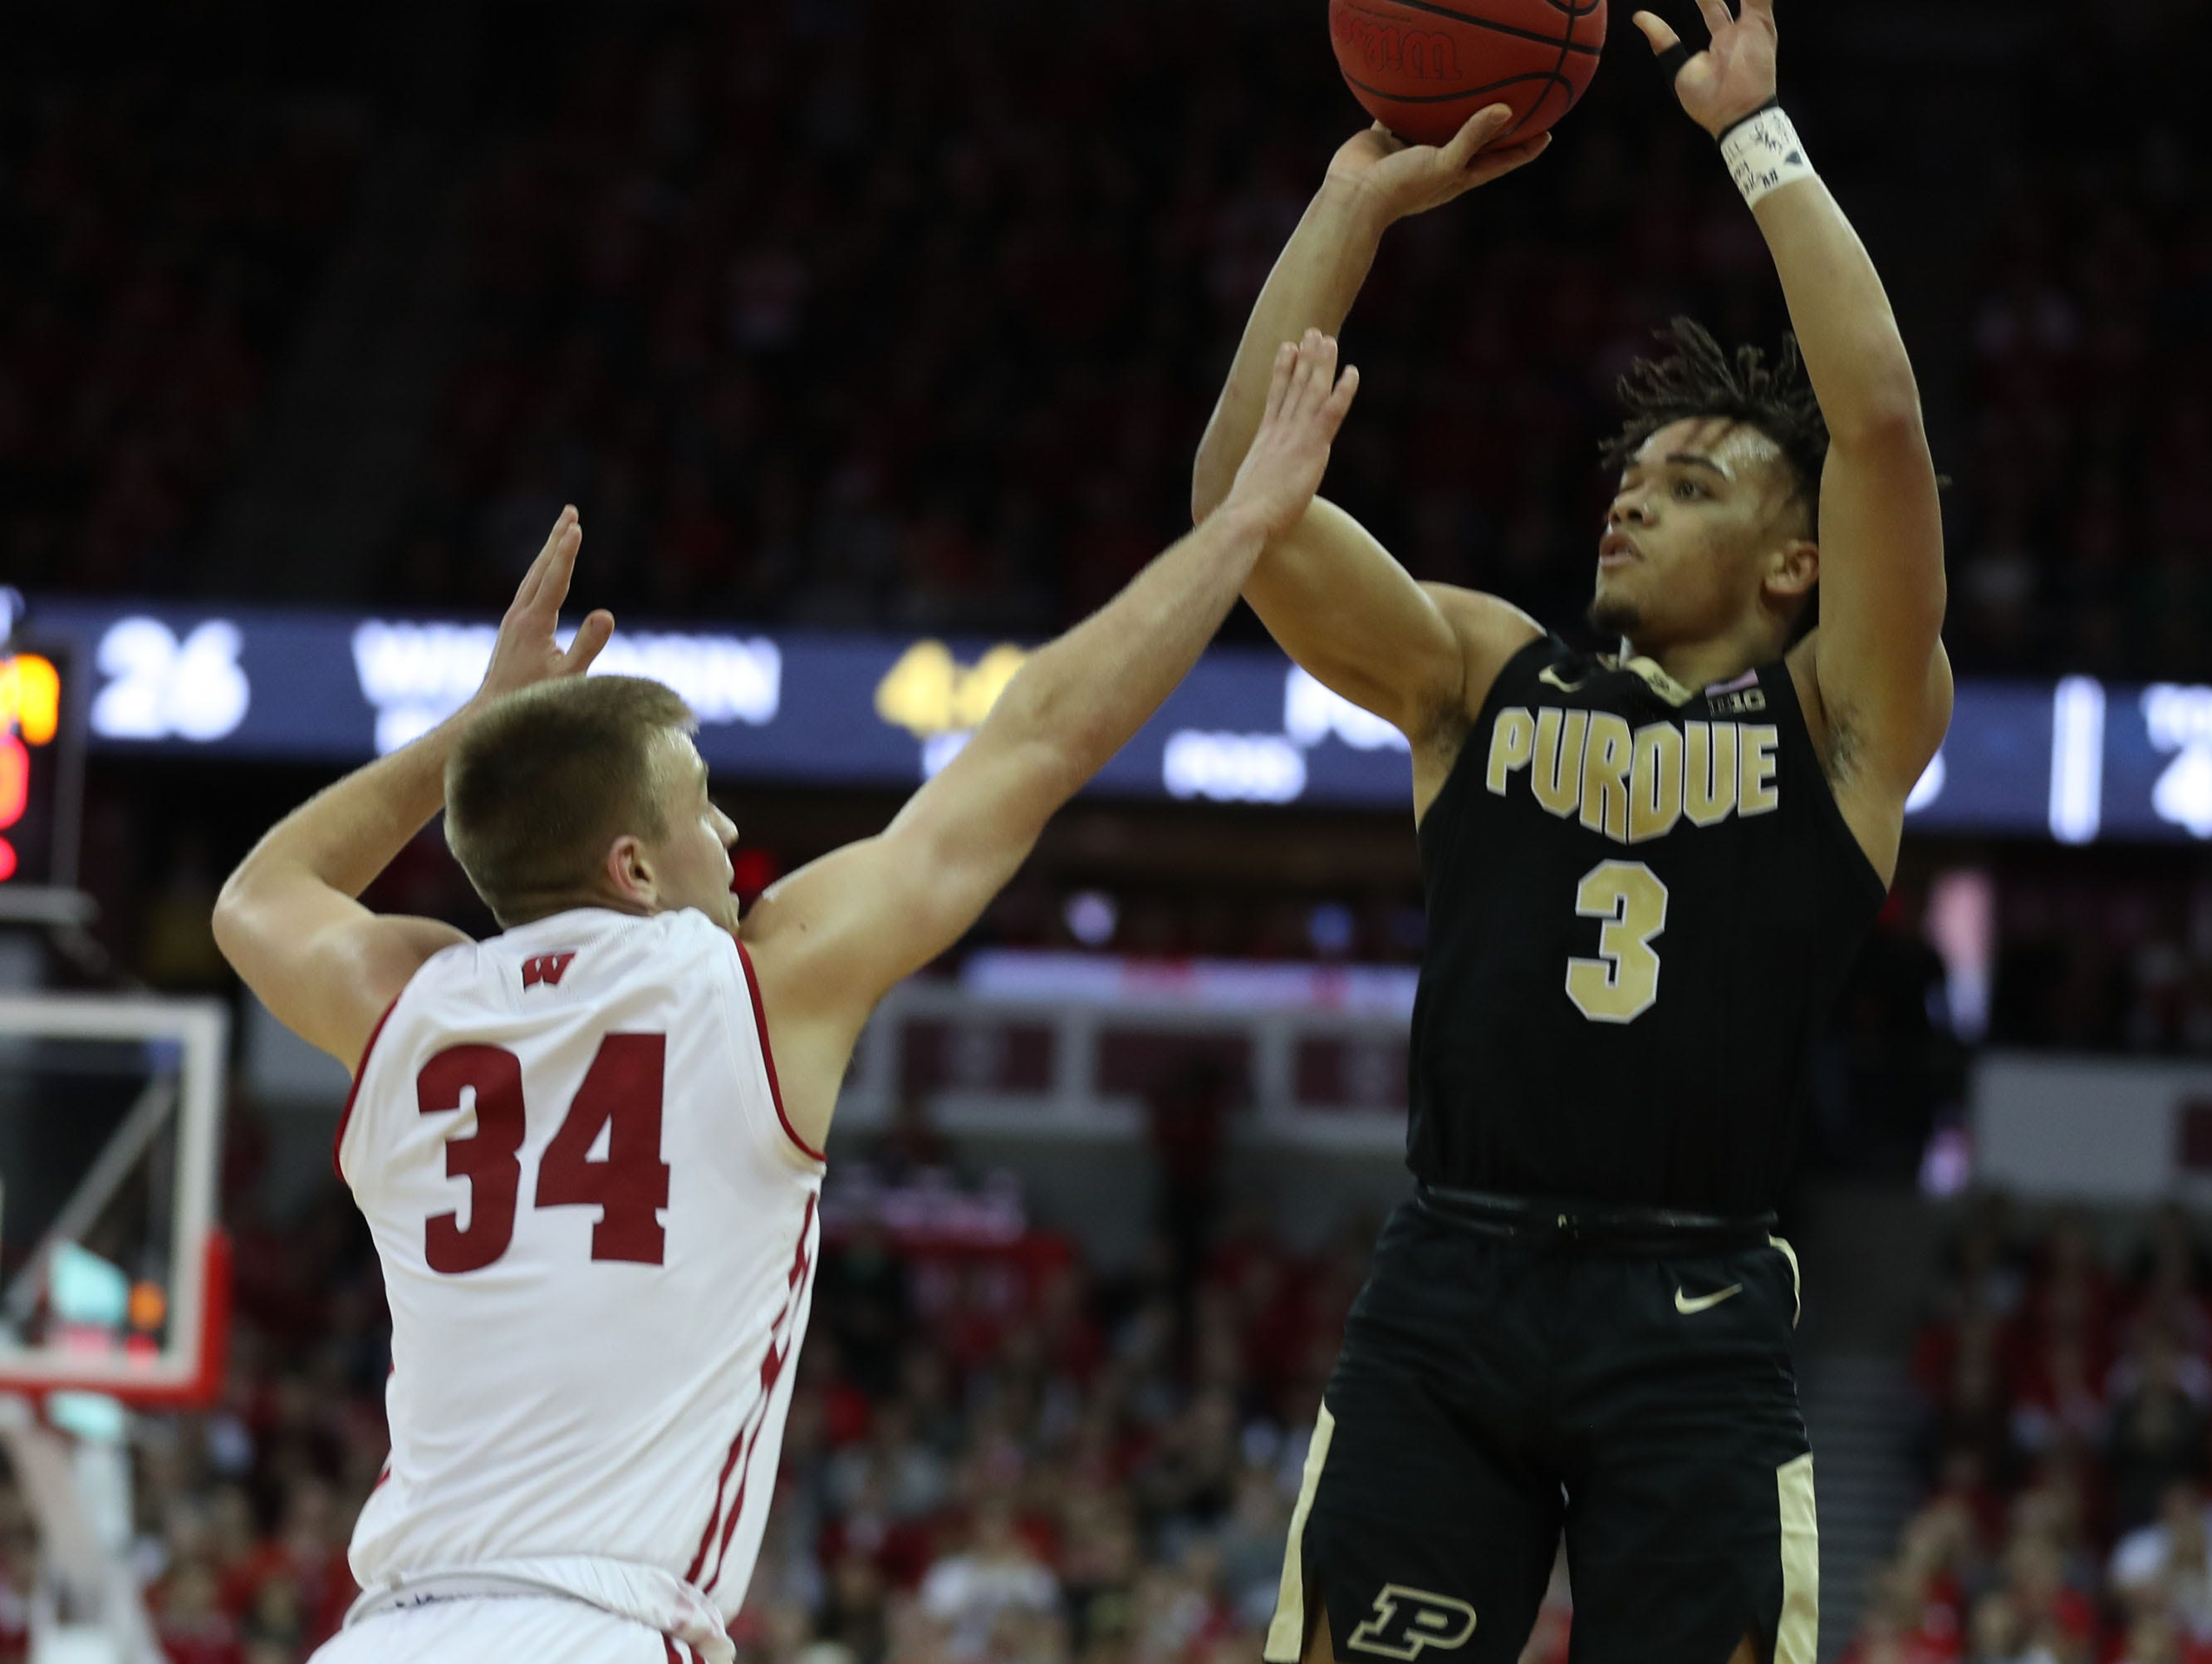 JBrad Davison and his Badgers teammates had no answers on how to stop Purdue guard Carsen Edwards, who went off for 36 points in the Boilermakers' overtime victory on Friday night at the Kohl Center.